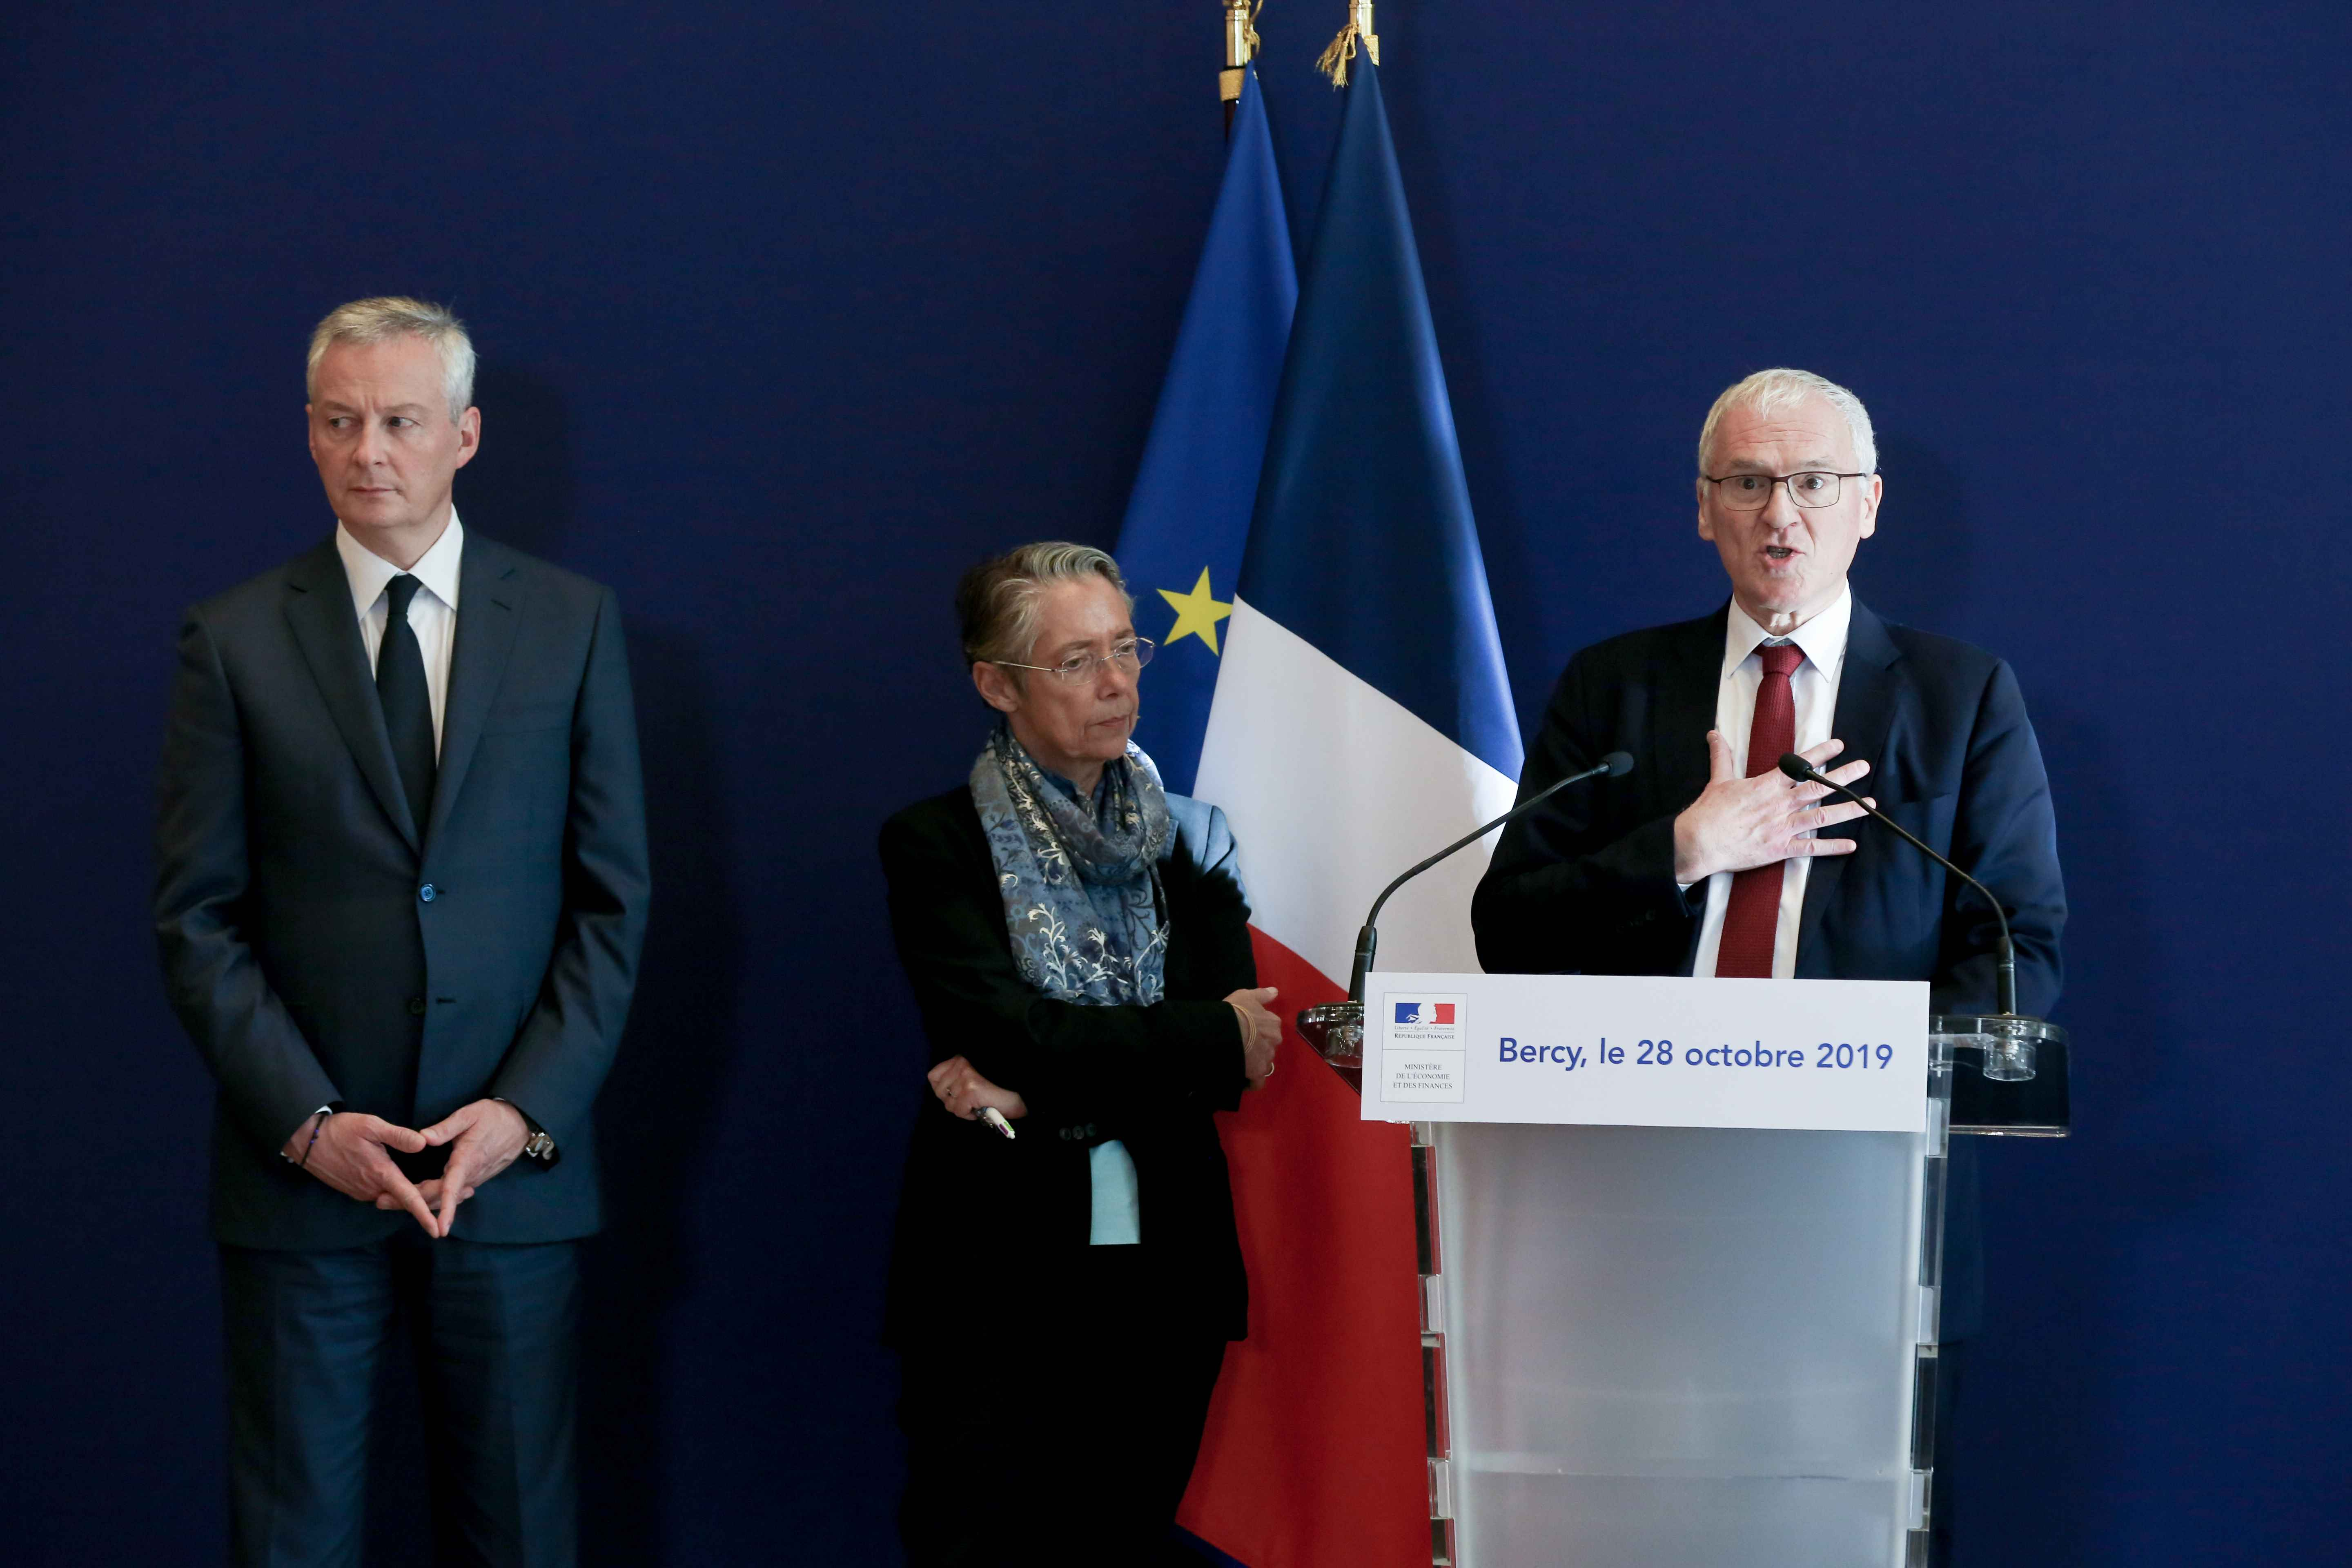 (From L to R) French Finance and Economy Minister Bruno Le Maire, French Minister for the Ecological and Inclusive Transition Elisabeth Borne and French energy giant EDF's CEO Jean-Bernard Levy  give a joint press conference to present a report concerning